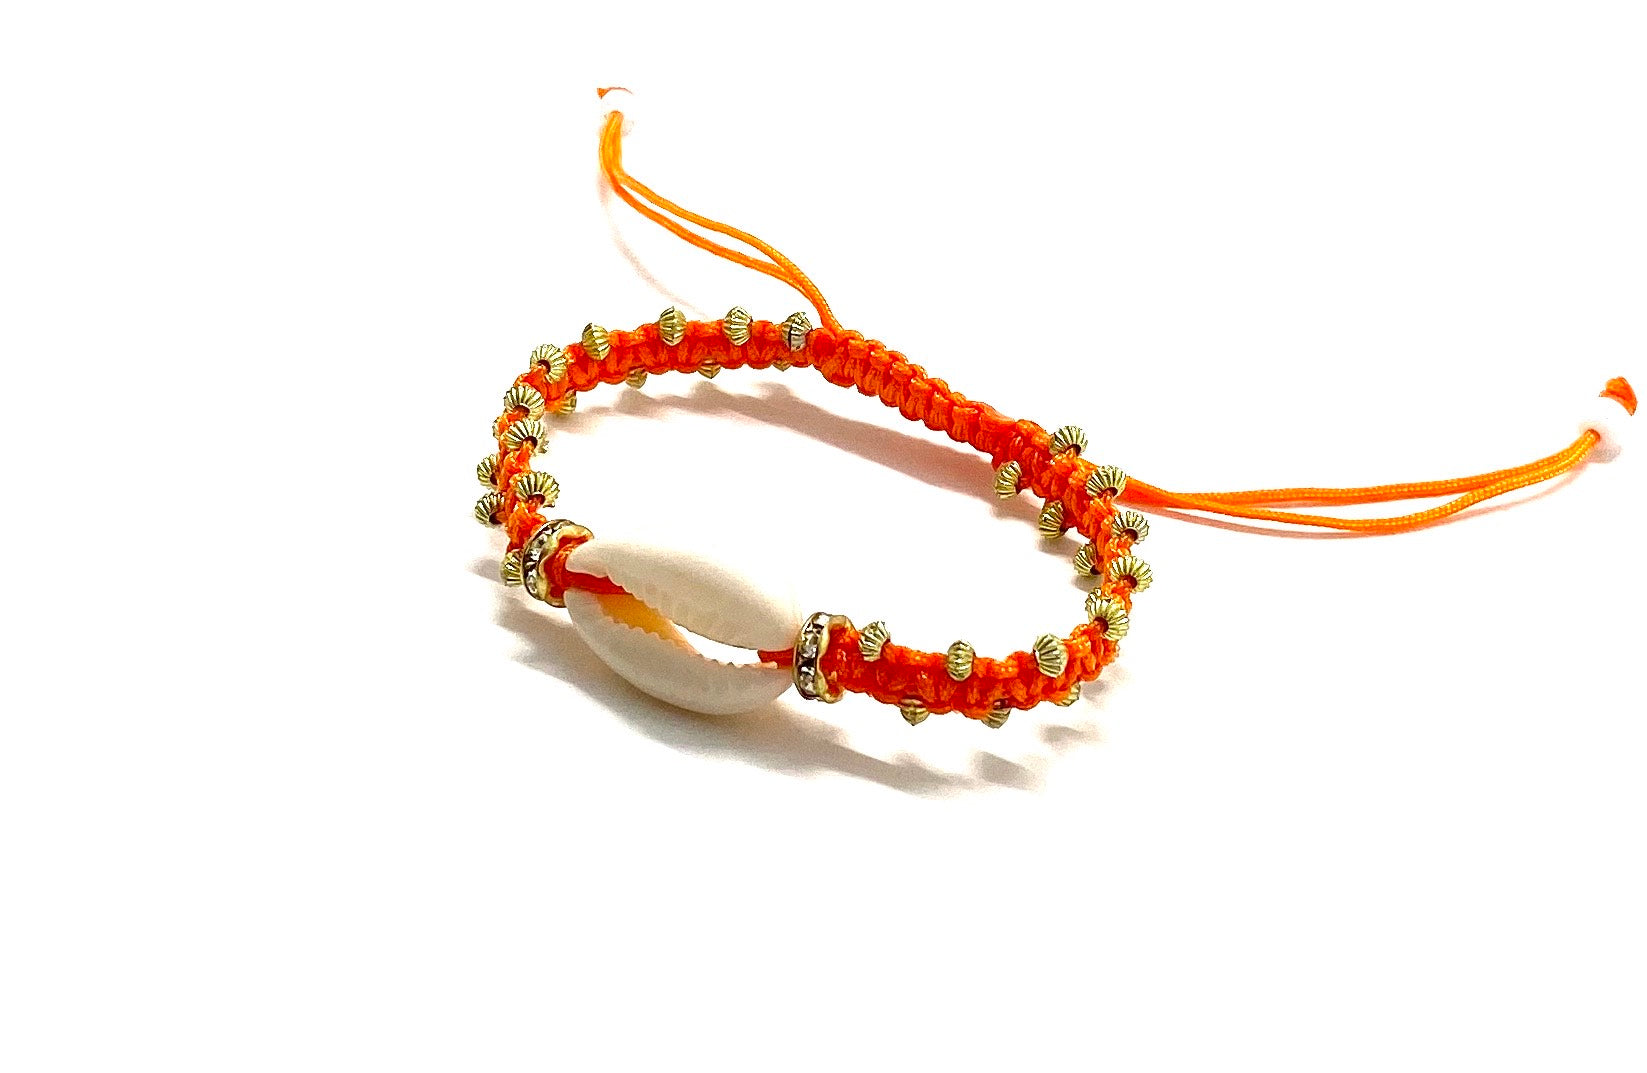 Natural shell bracelet with gold toupee on orange braided cord